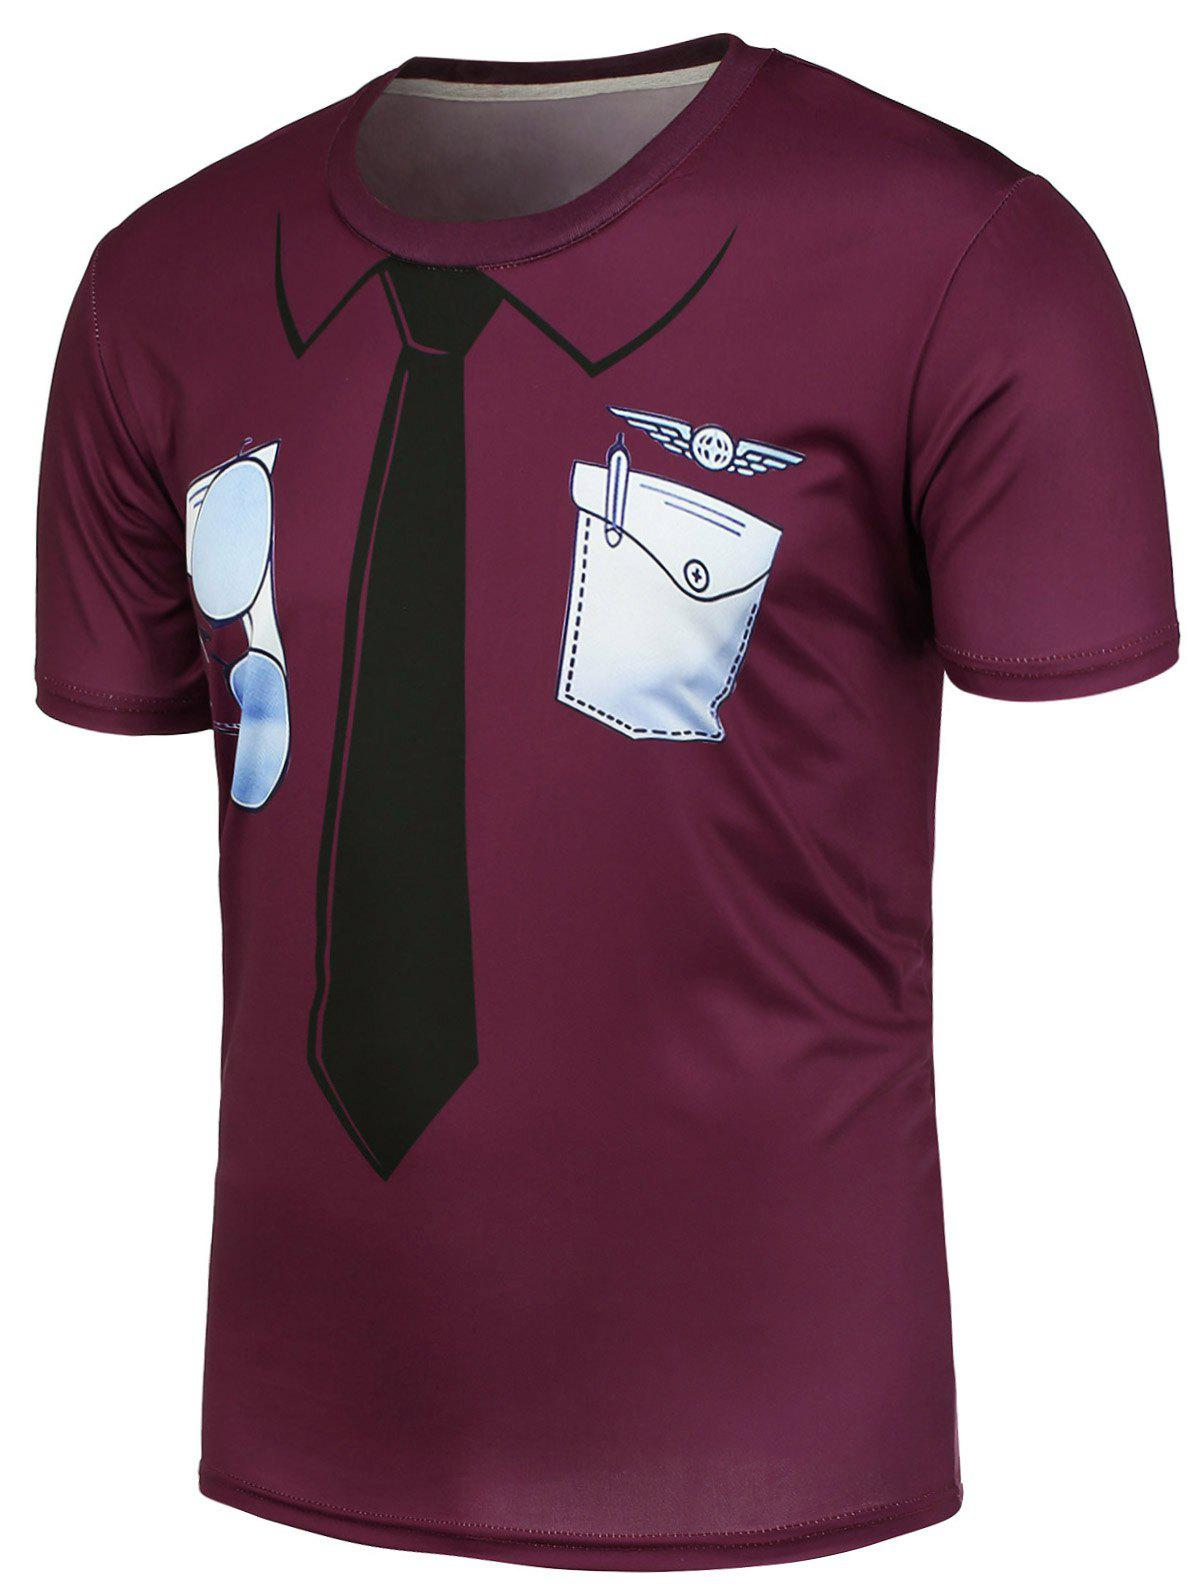 3D Tie and Pocket Printed Crew Neck T-Shirt